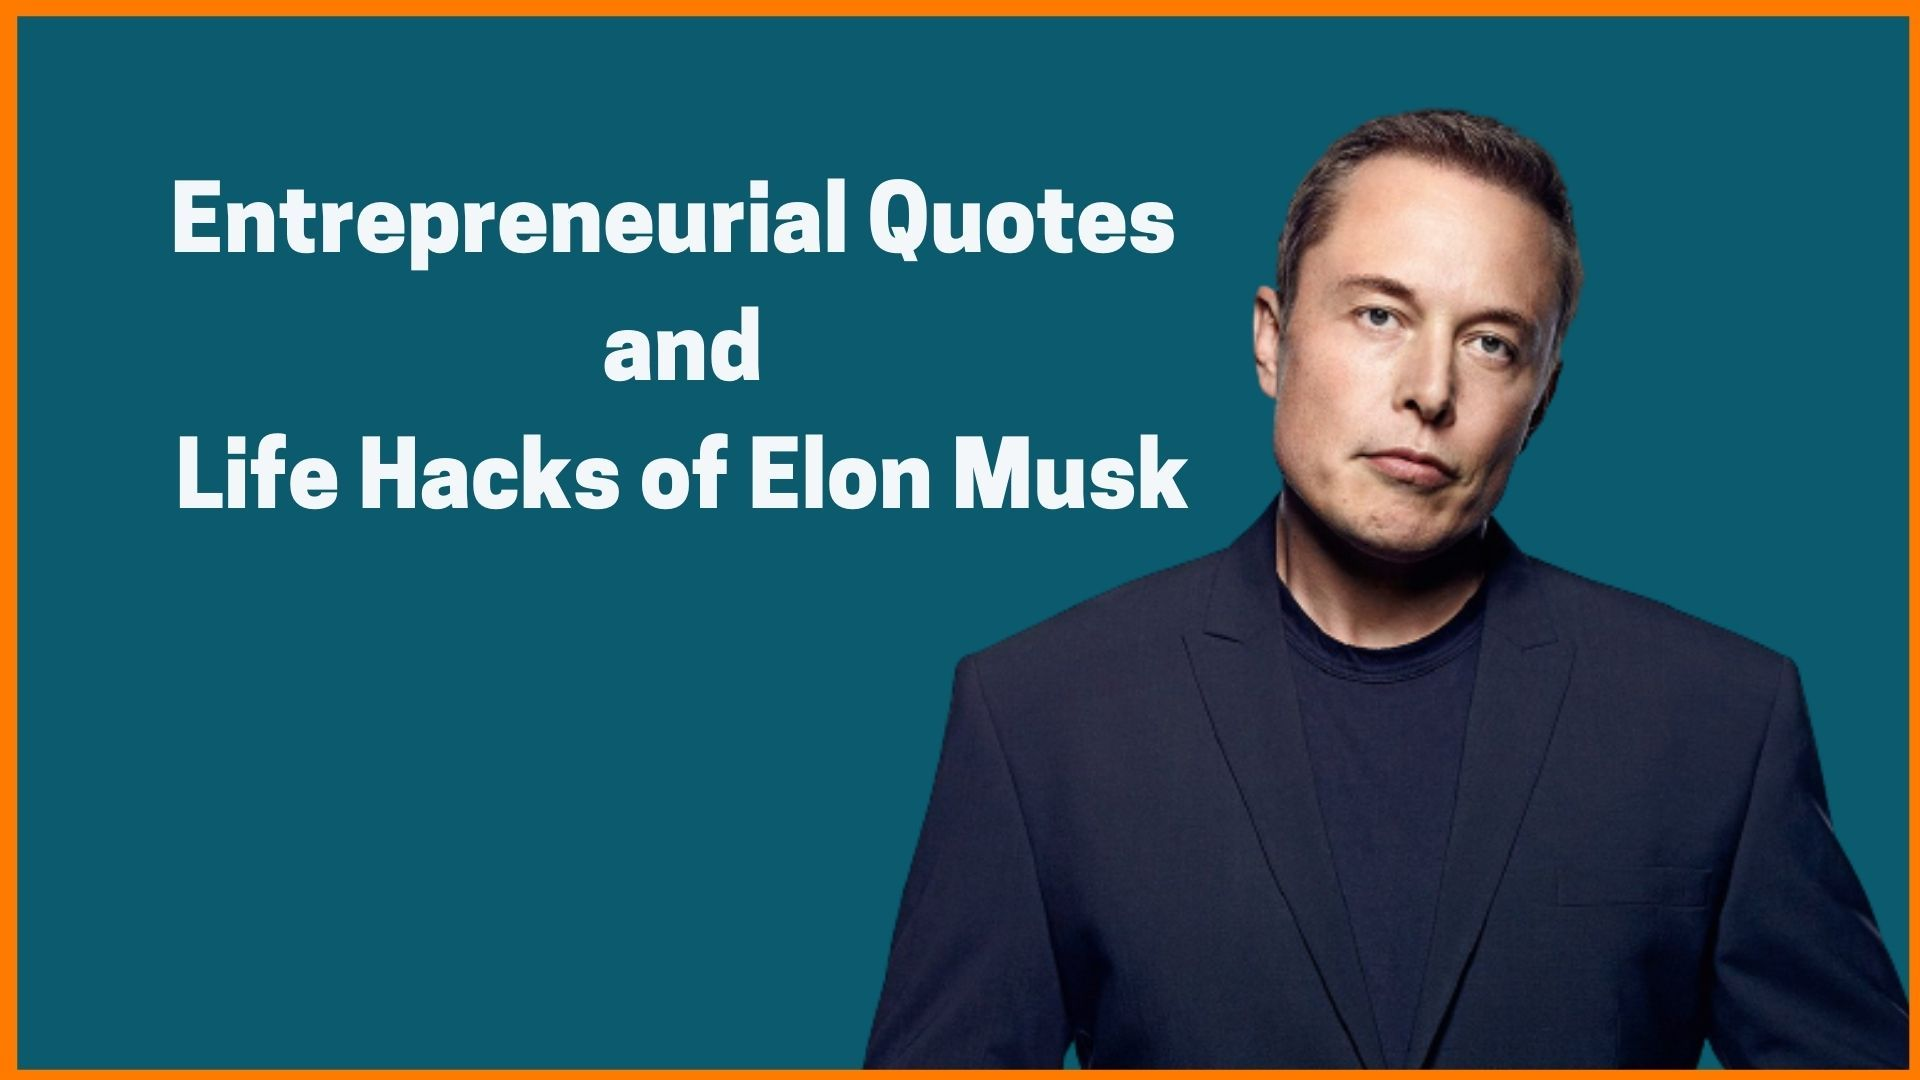 Entrepreneurial Quotes And Life Hacks Of Elon Musk